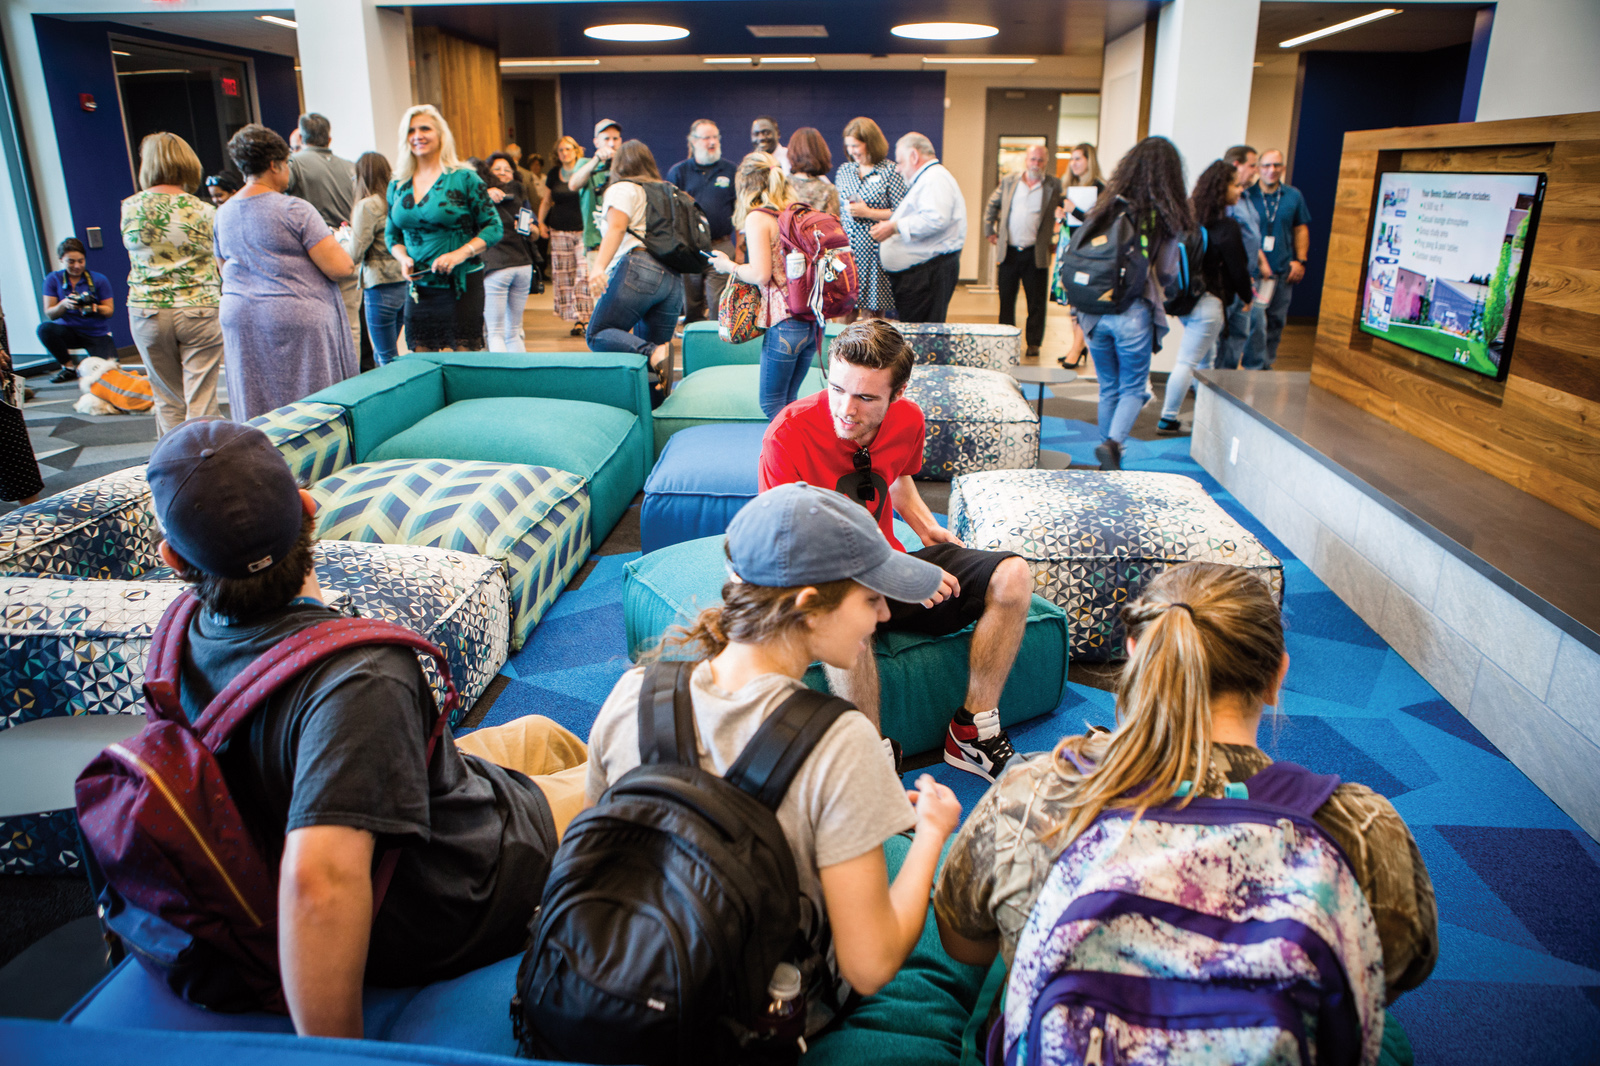 A group of people are gathered in a large social space.